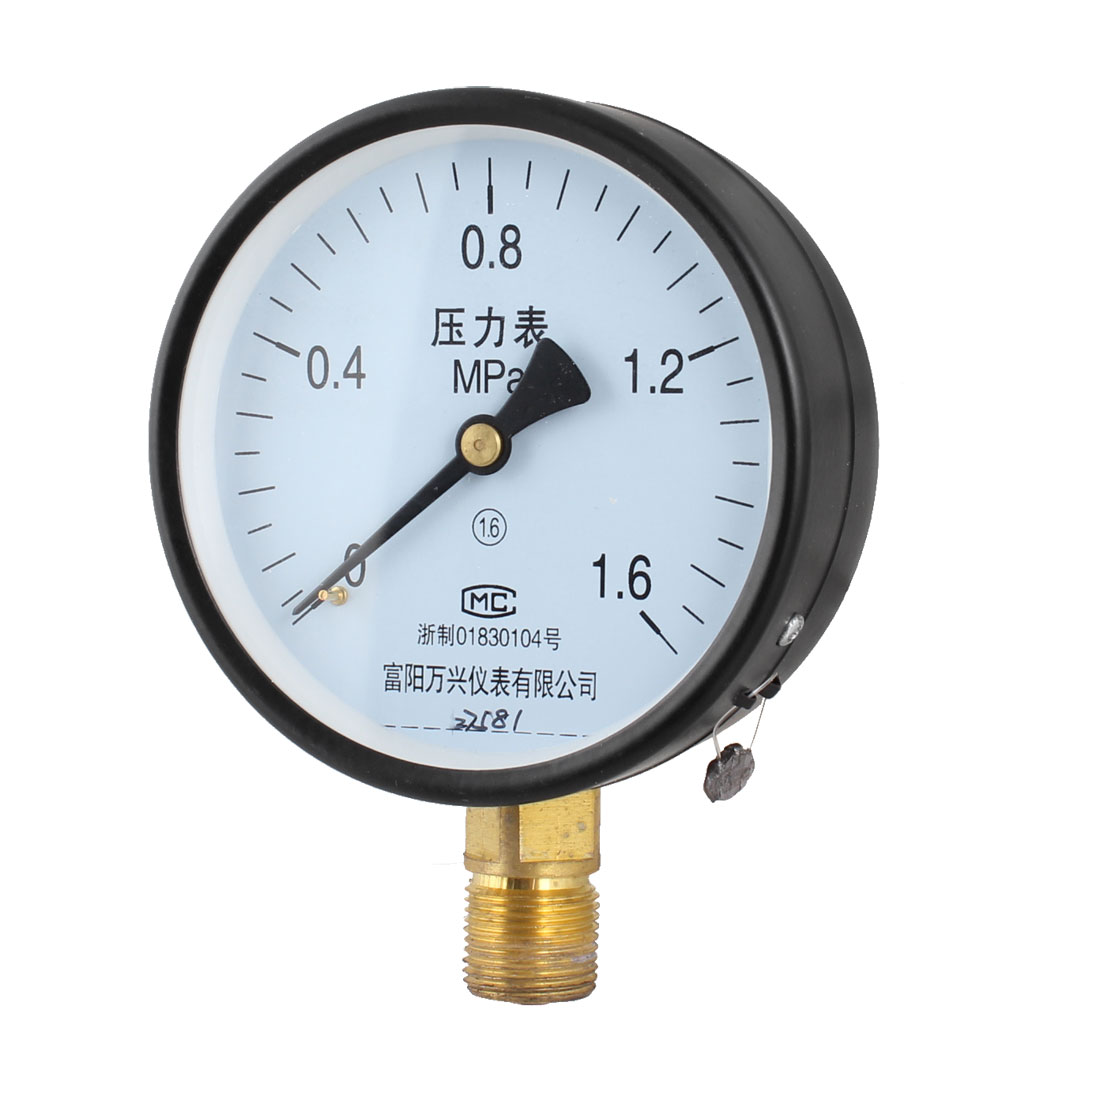 1.6Mpa Pressure Intensity PT 1/2 Threaded Connector Round Dial Water Gauge